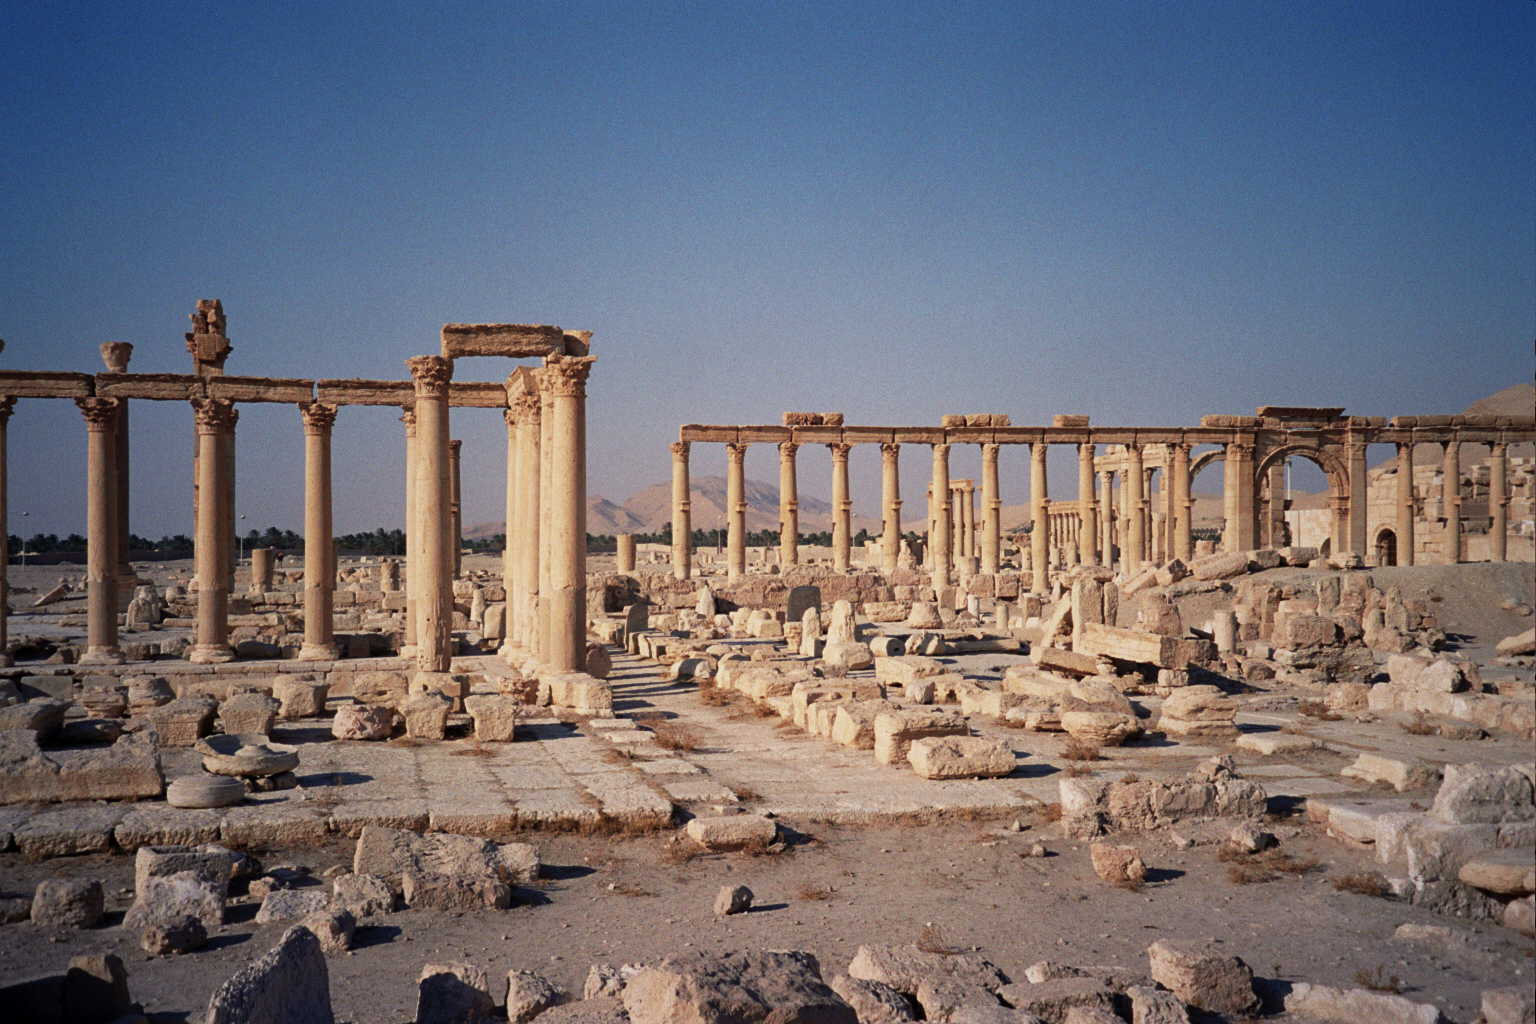 UNESCO Warns of Looting in Syria